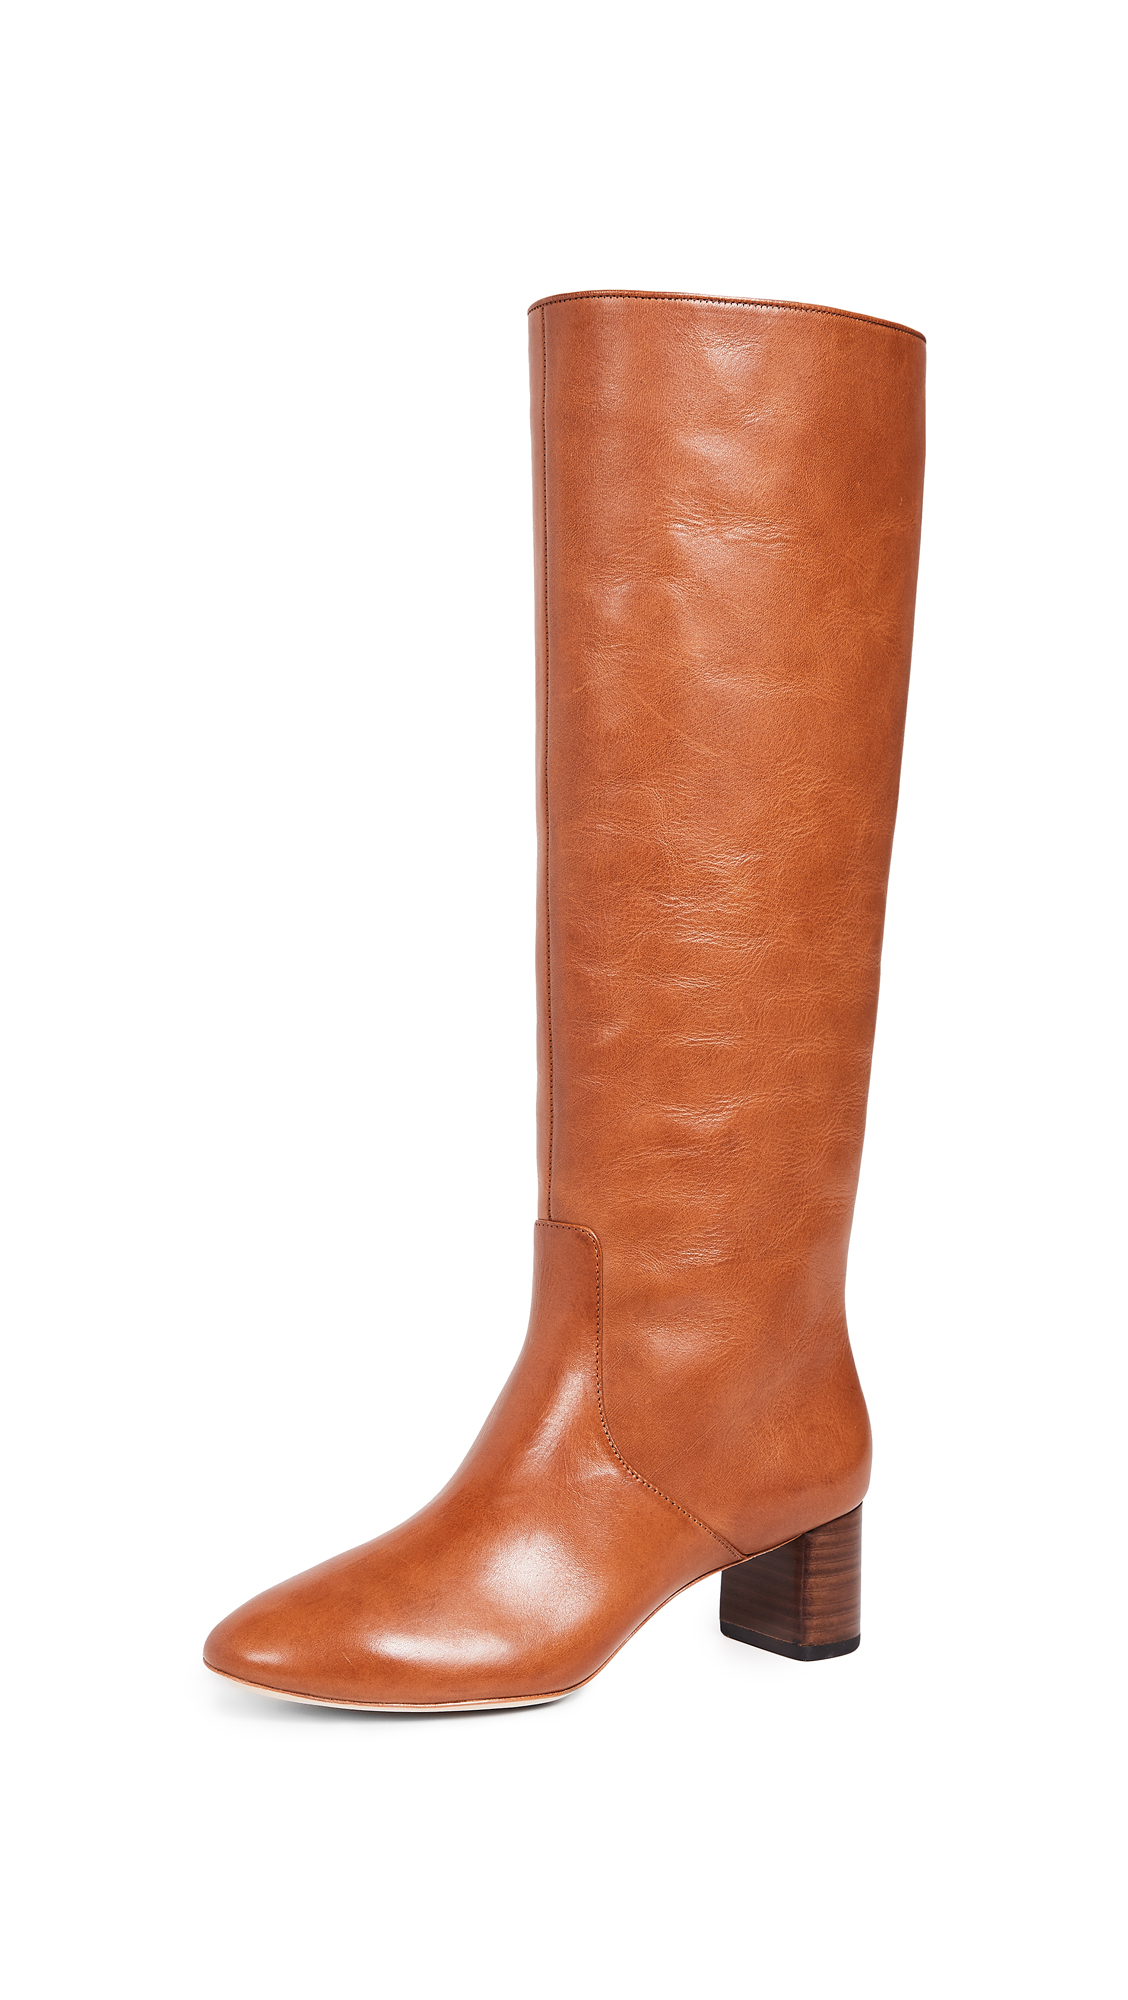 Gia Tall Boots in Cognac